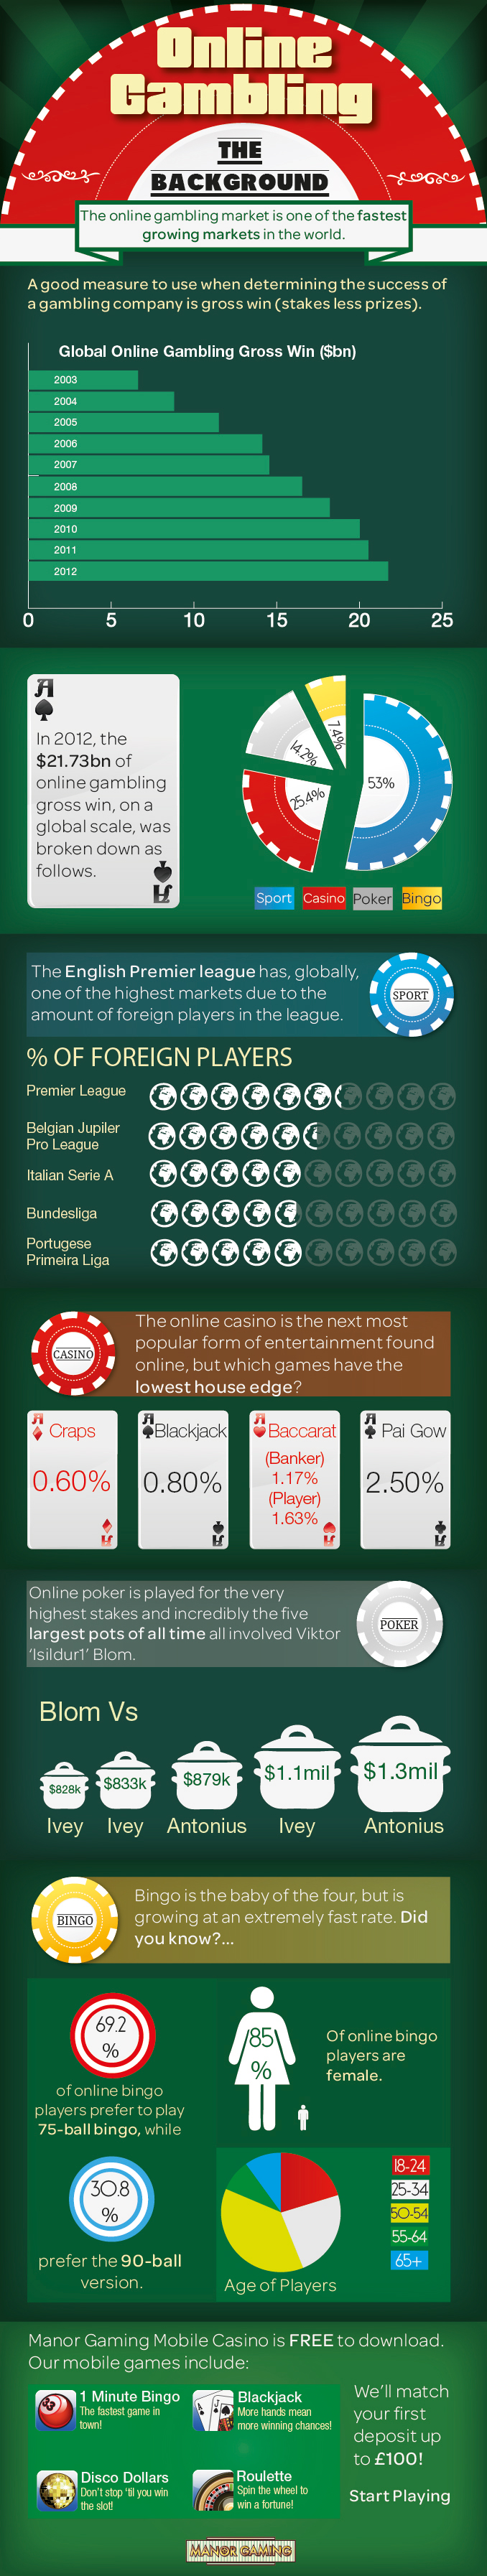 infographic-online-gambling--the-background_526674e527ec7 (1)